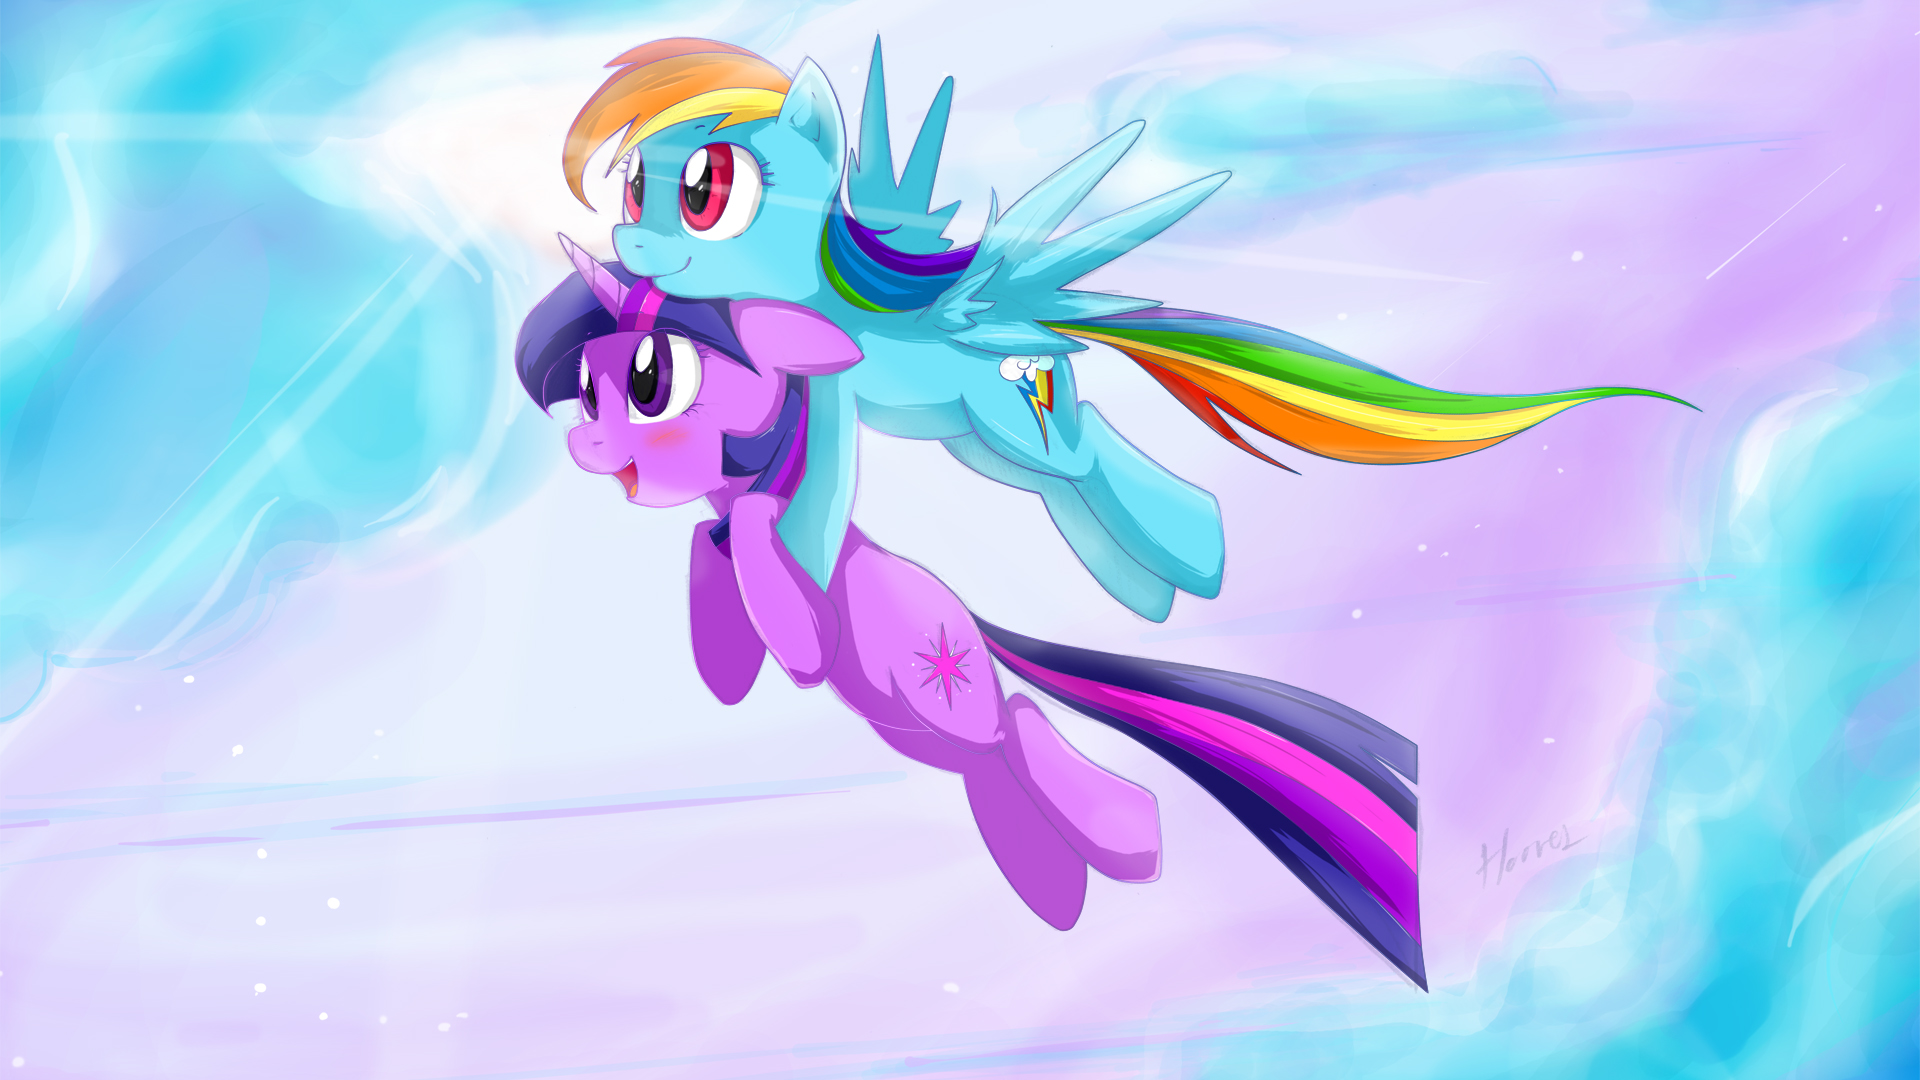 twidash_flight_scene_of_friendship_by_de